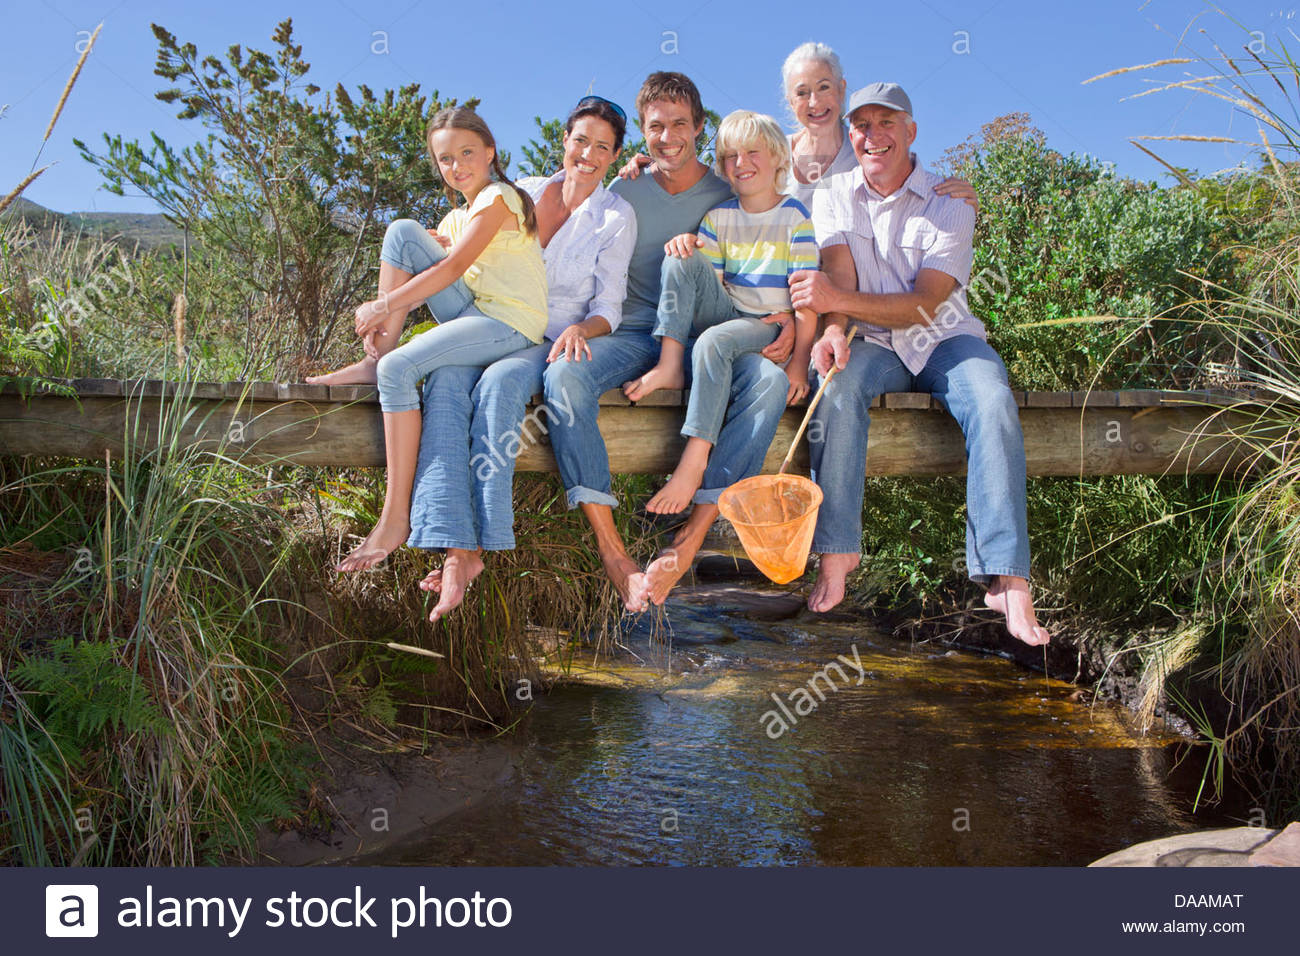 Portrait of smiling multi-generation family sitting barefoot on footbridge over stream - Stock Image